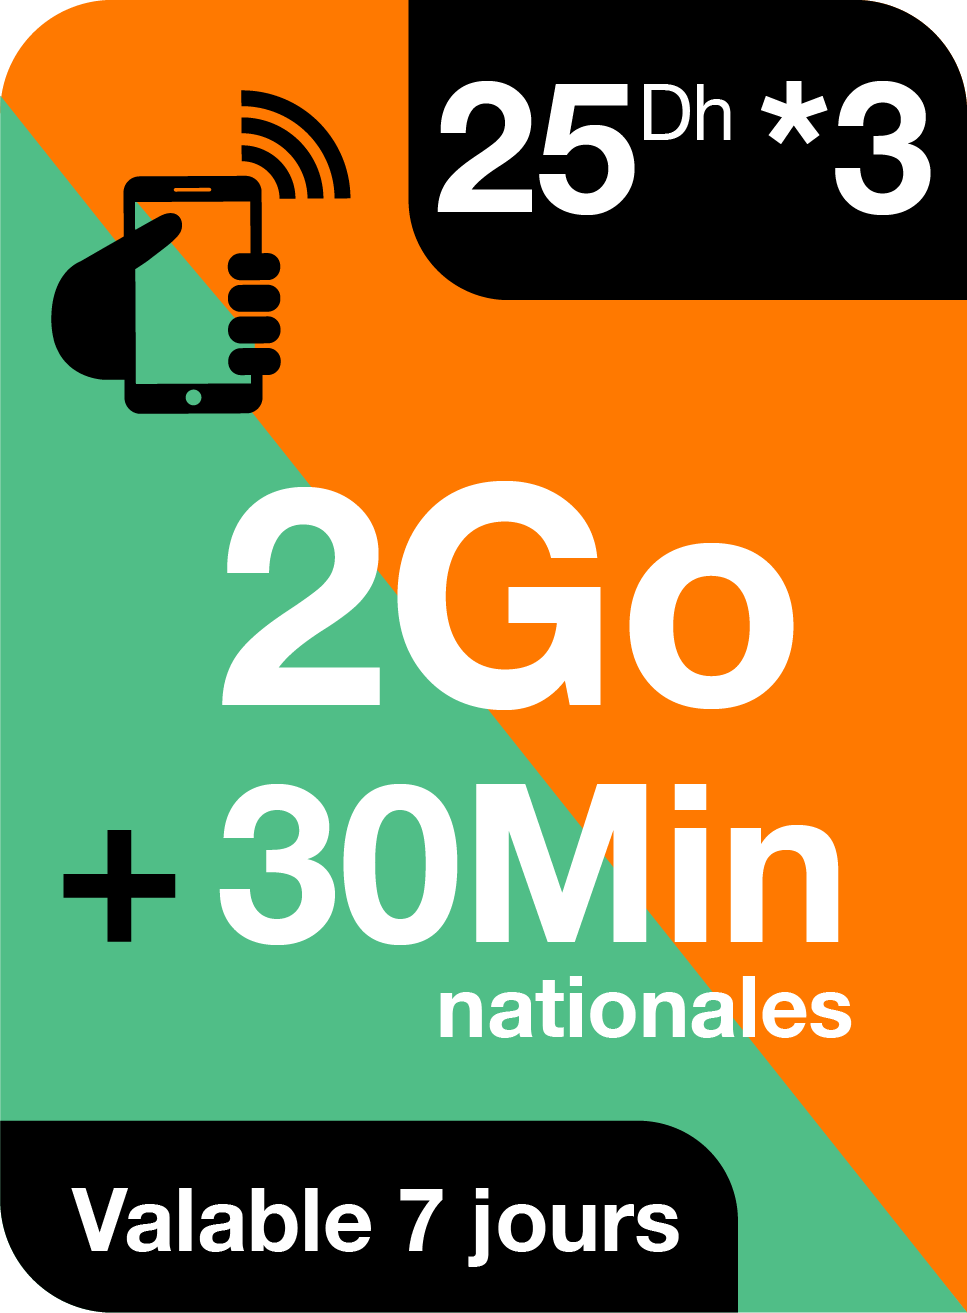 2Go + 30 min nationales